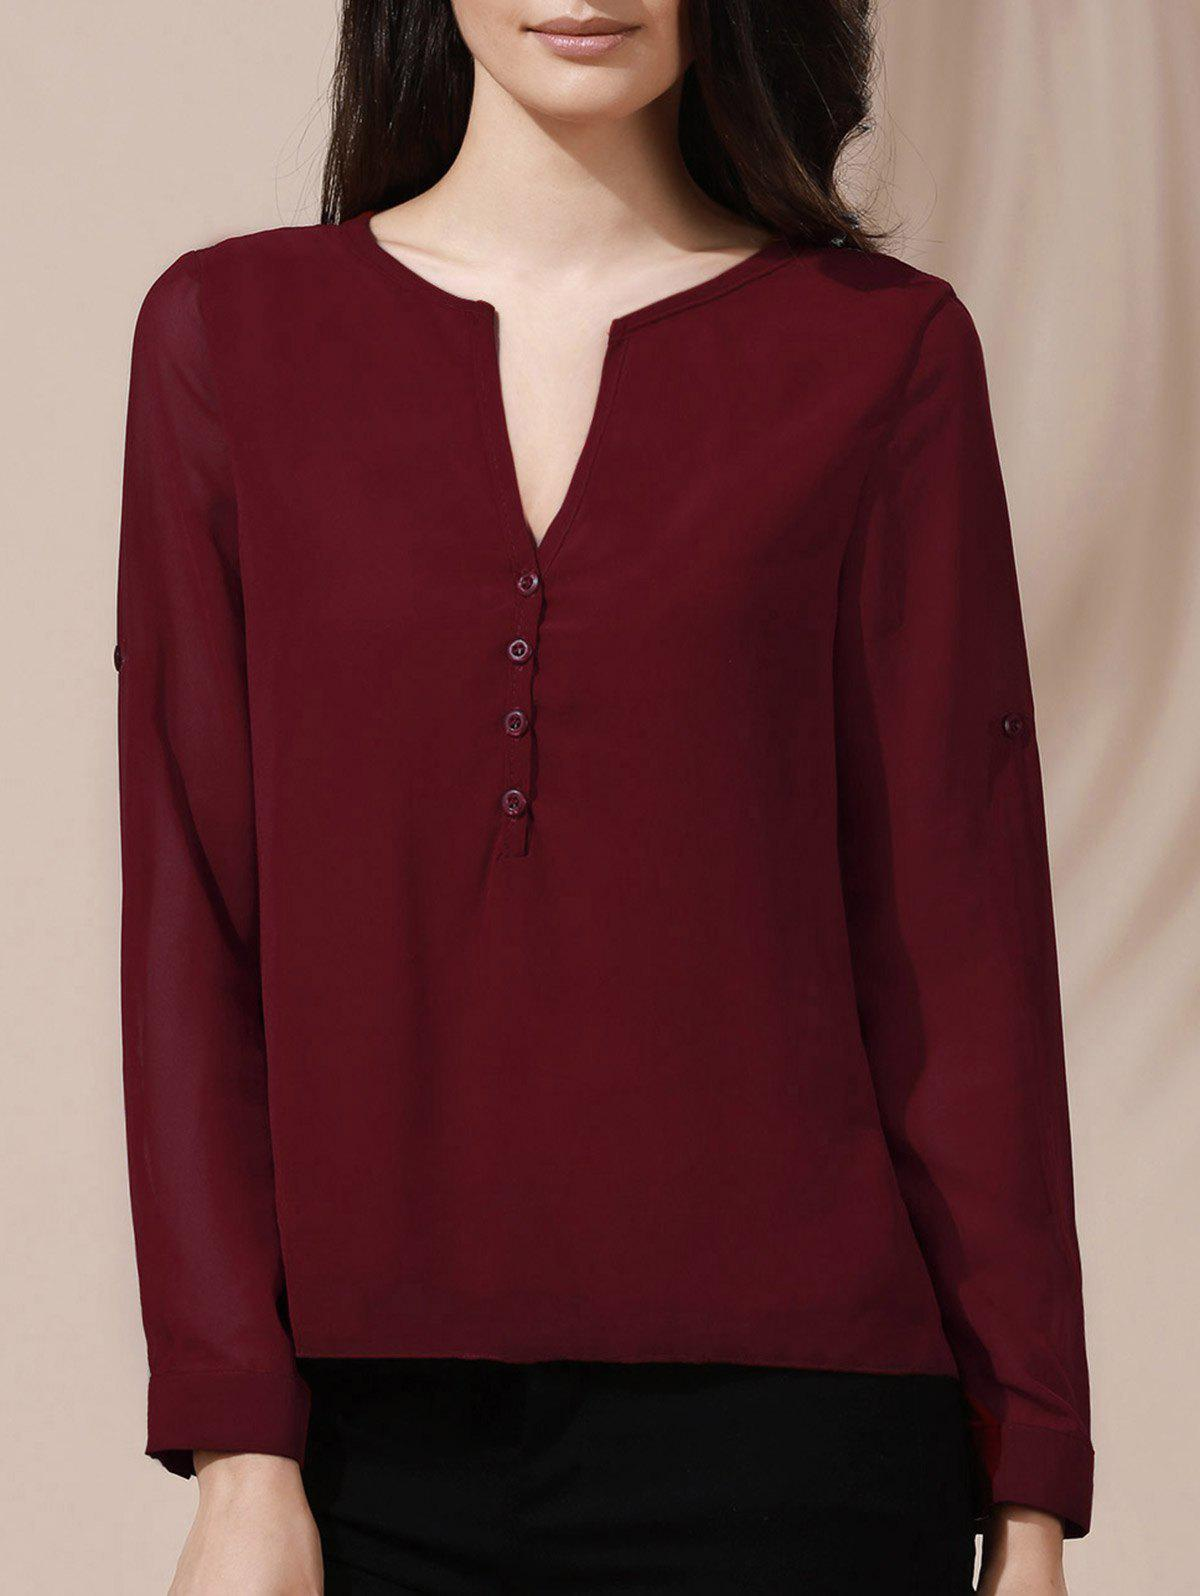 Chic Womens V-Neck Button Design Long Sleeve BlouseWOMEN<br><br>Size: XL; Color: WINE RED; Style: Streetwear; Material: Polyester; Shirt Length: Regular; Sleeve Length: Full; Collar: V-Neck; Pattern Type: Solid; Season: Spring,Summer,Fall; Weight: 0.190kg; Package Contents: 1 x Blouse;